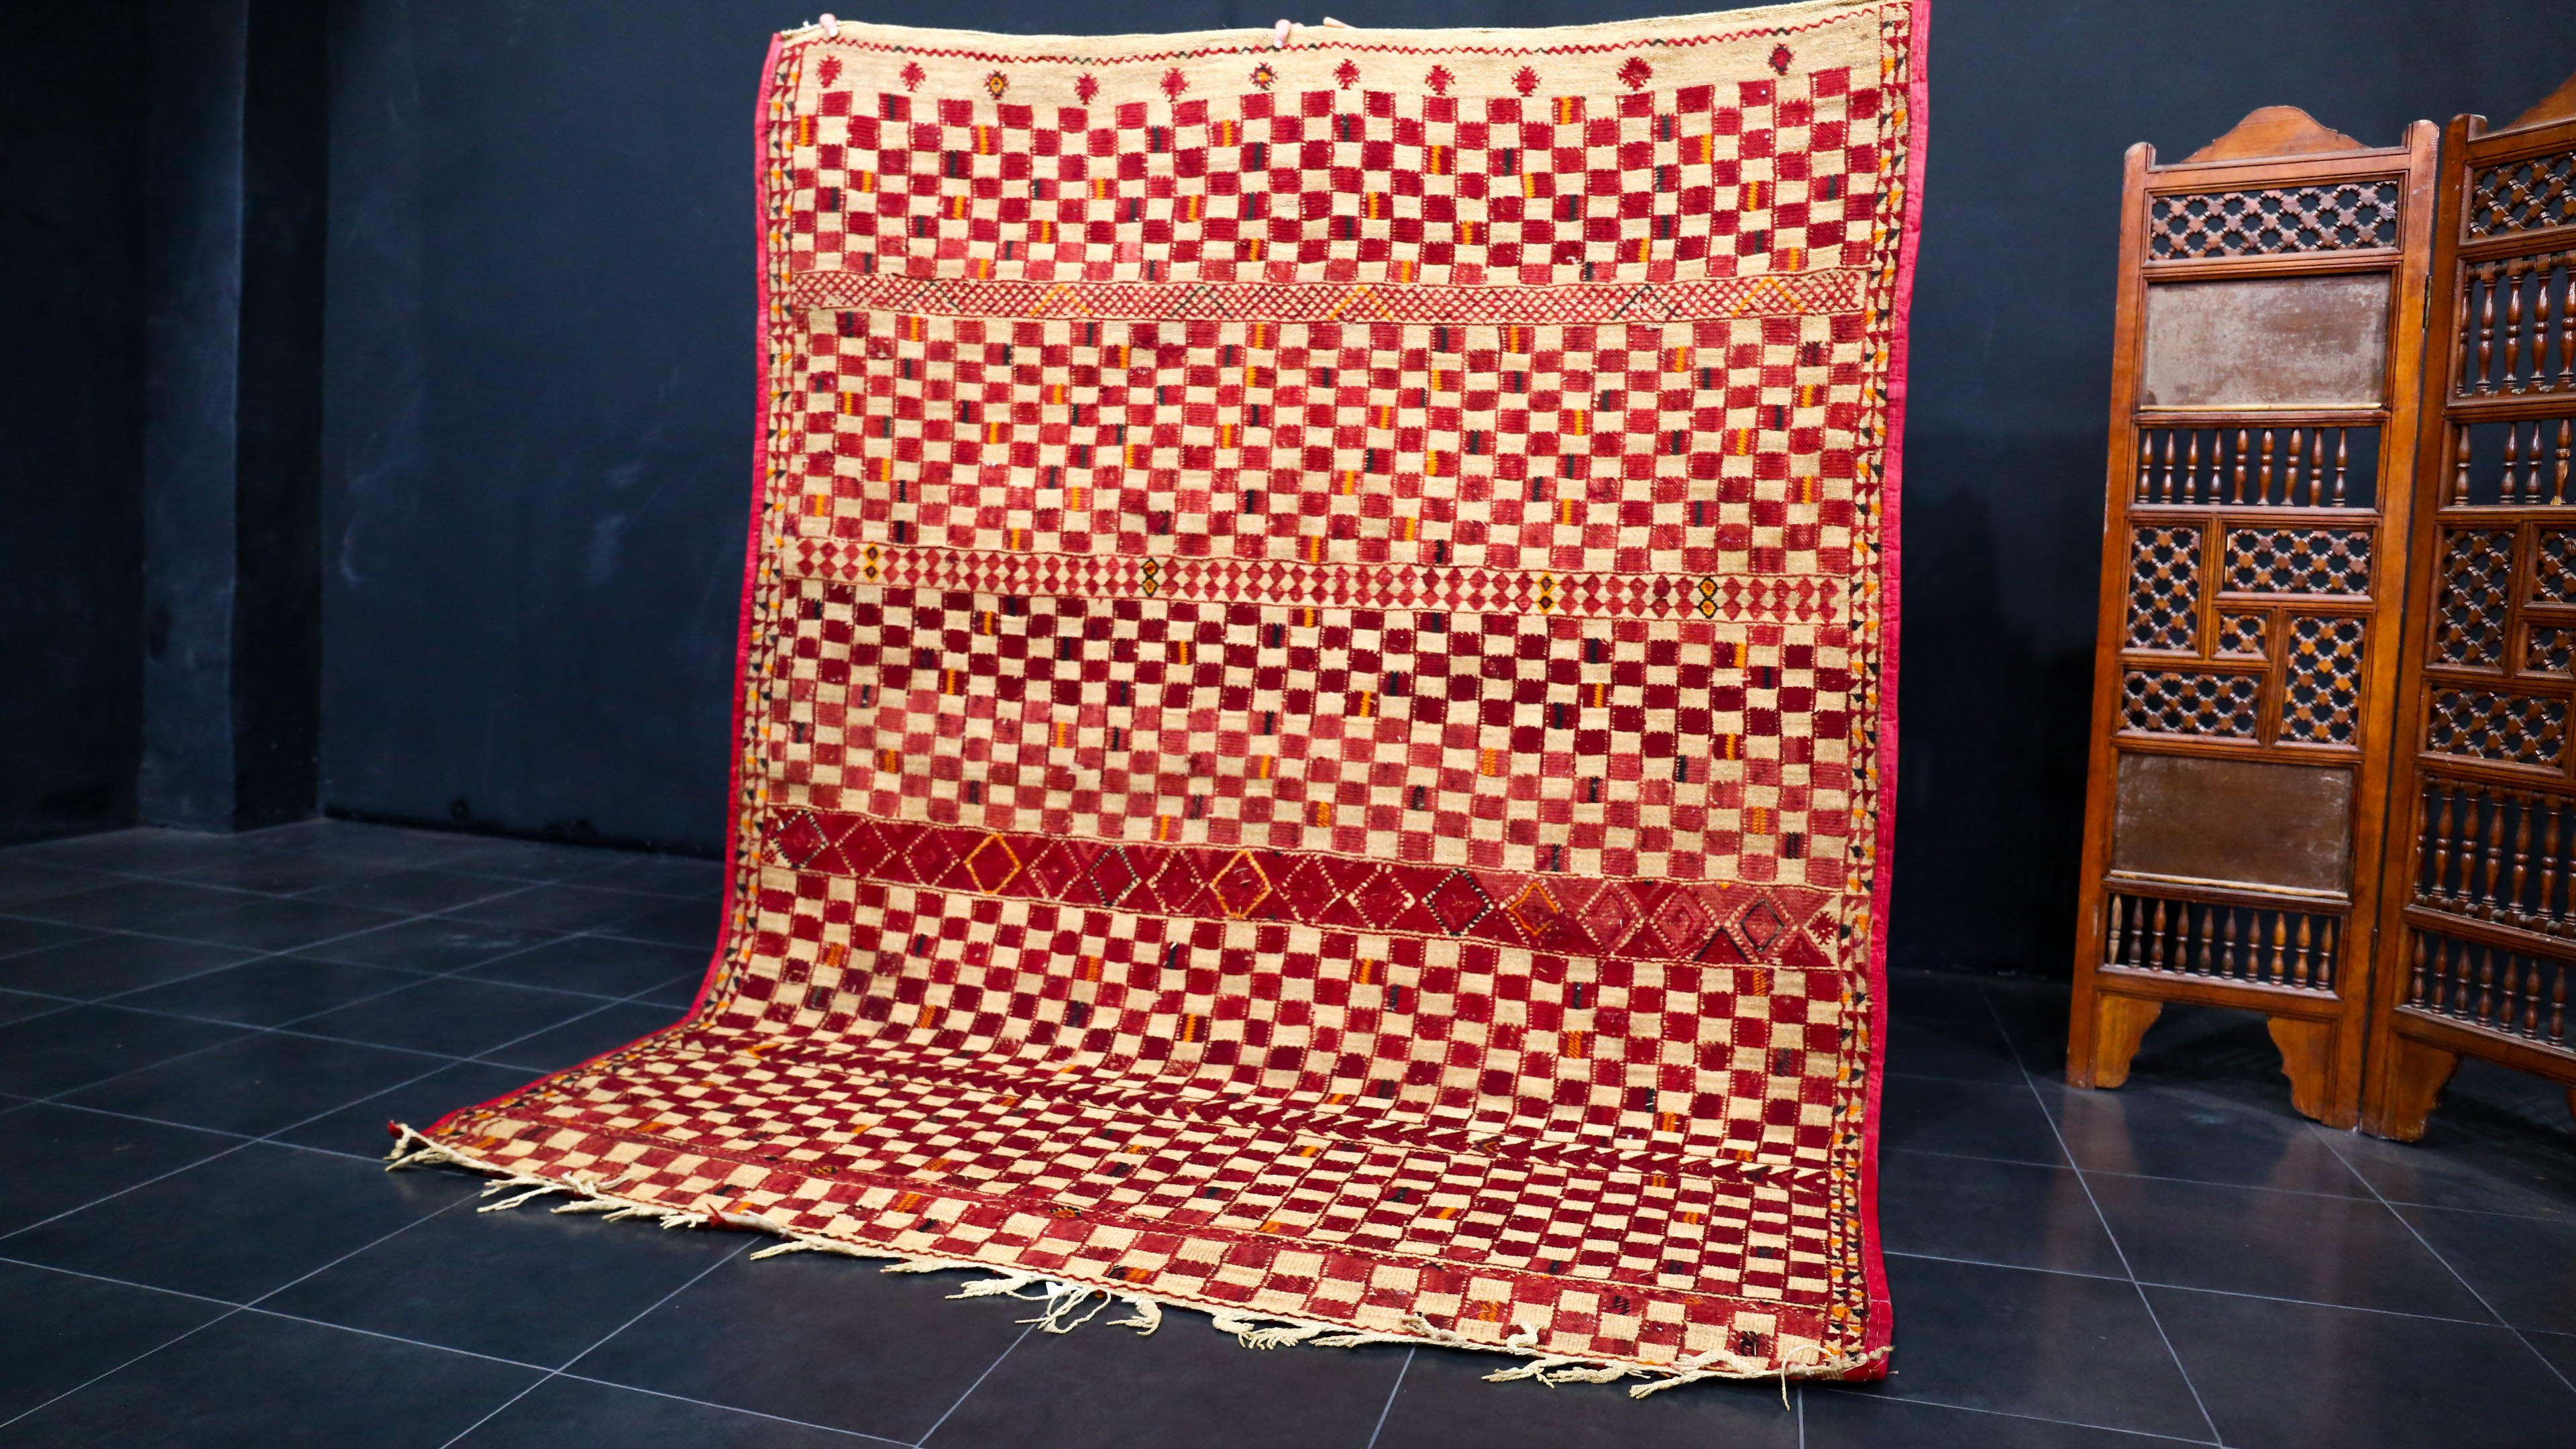 Fabulous 6x8 moroccan straw wool red mat African Mat Vintage Moroccan hassira carpet Berber mat rug with Leather trim